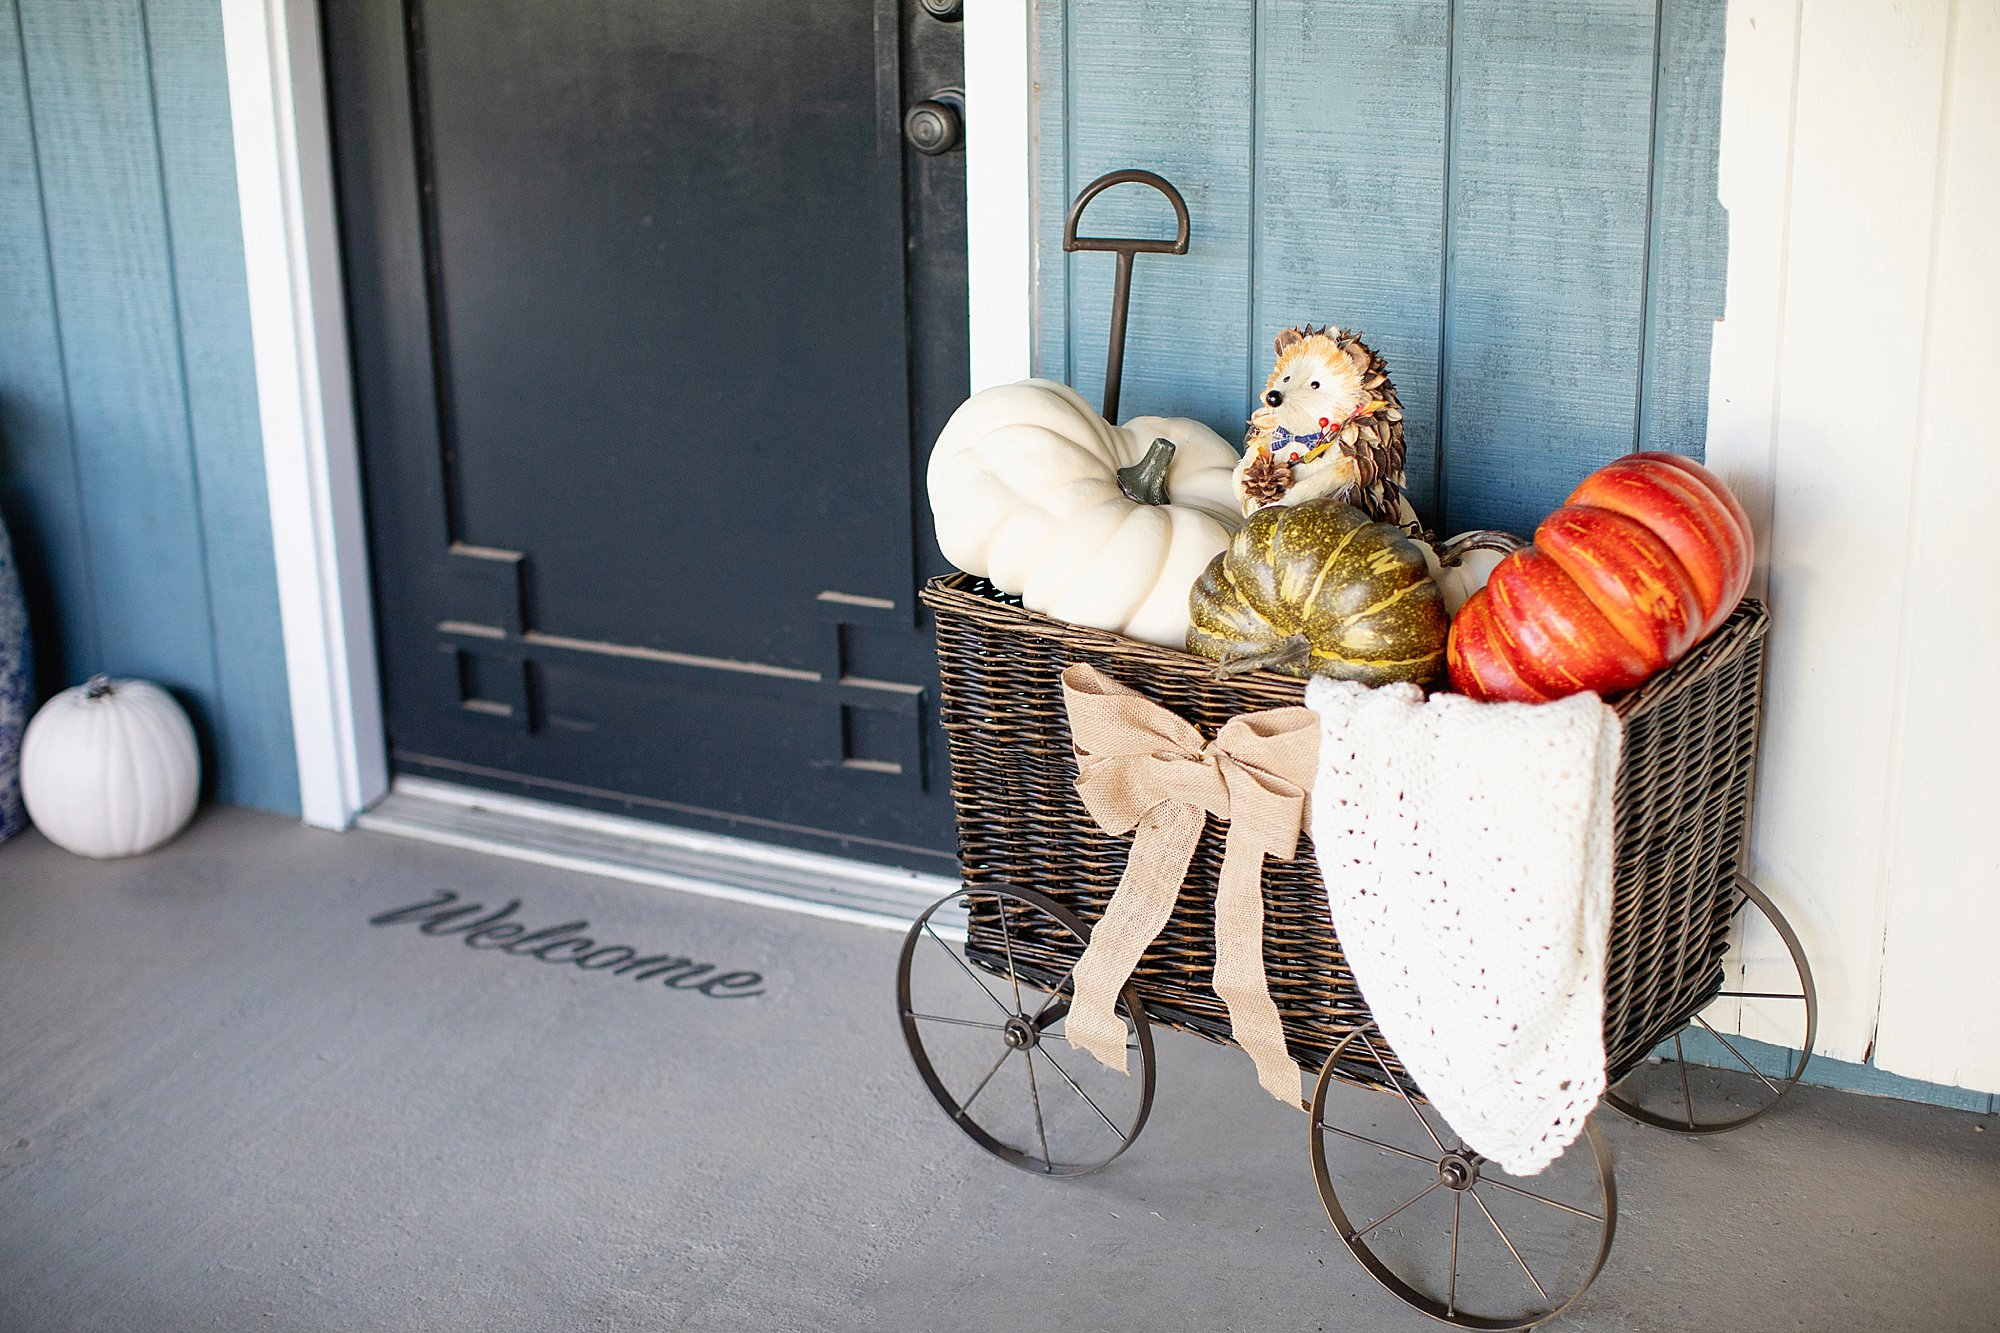 fall decor outdoor entertaining with balsam hill - wicker wagon filled with pumpkins